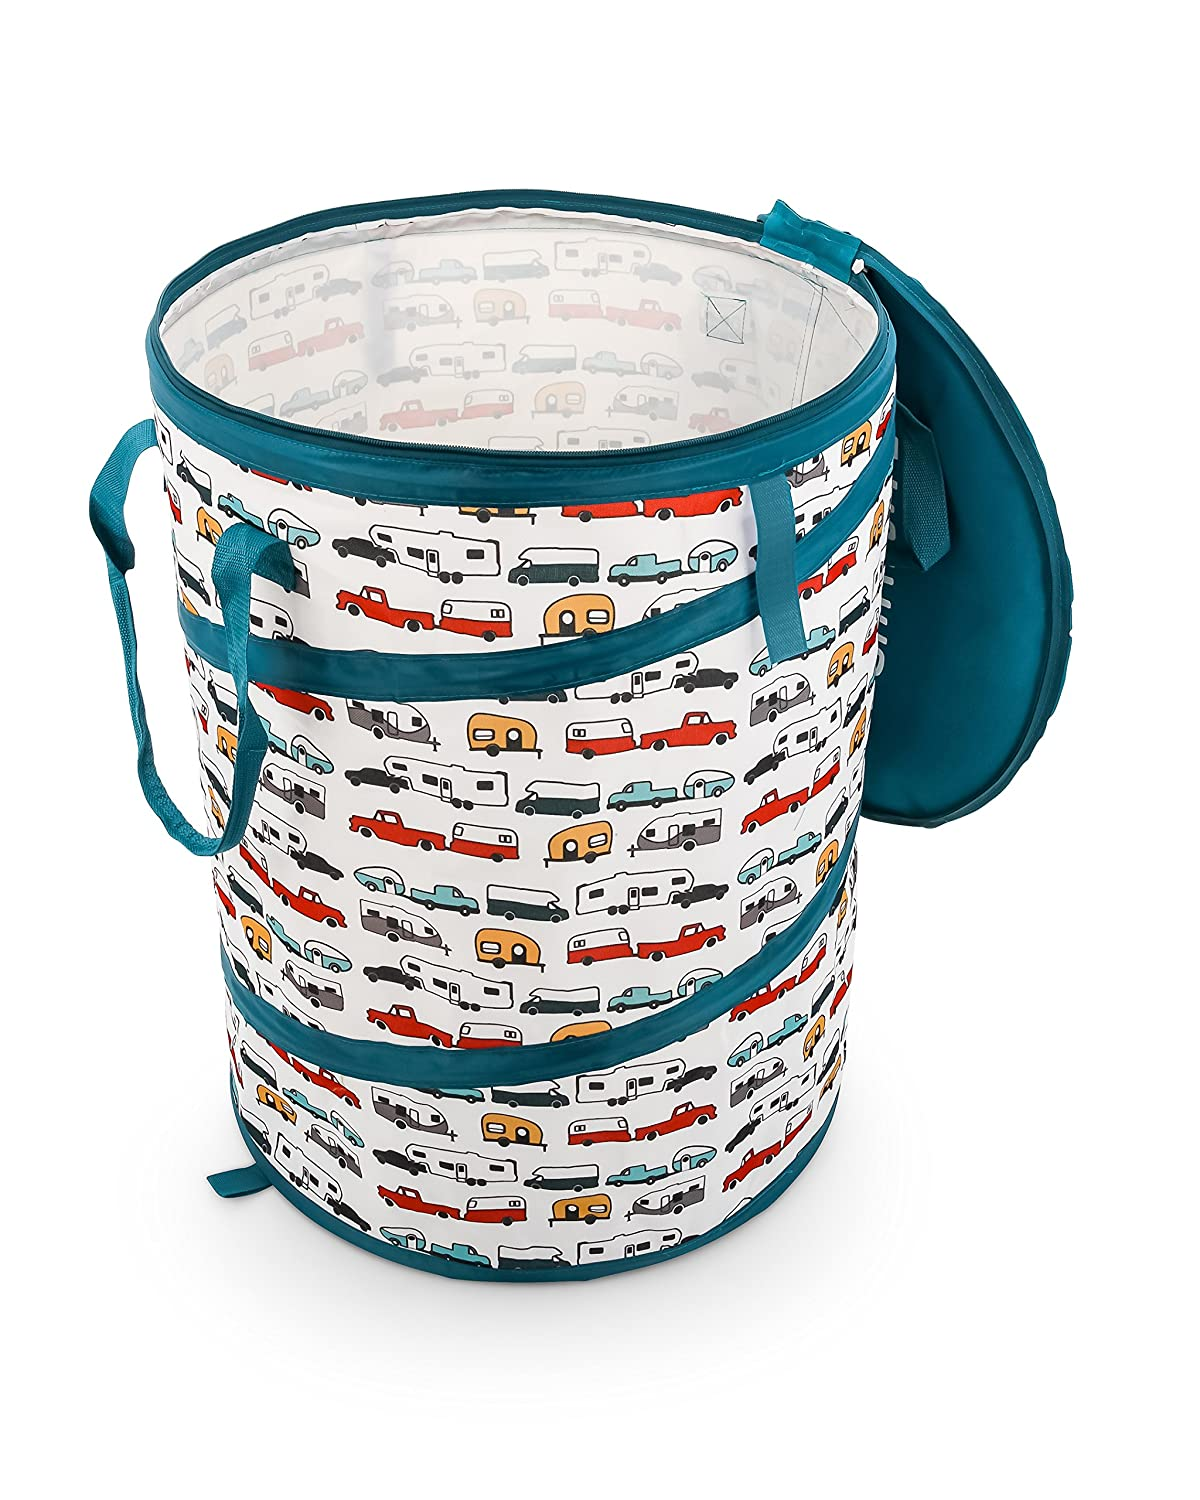 "Camco Tear Resistant Pop Up Utility Container, Can Be Used as a Collapsible Storage or Toy Bin 18"" x 24"" Life Is Better at The Campsite RV Print Design - (42986)"